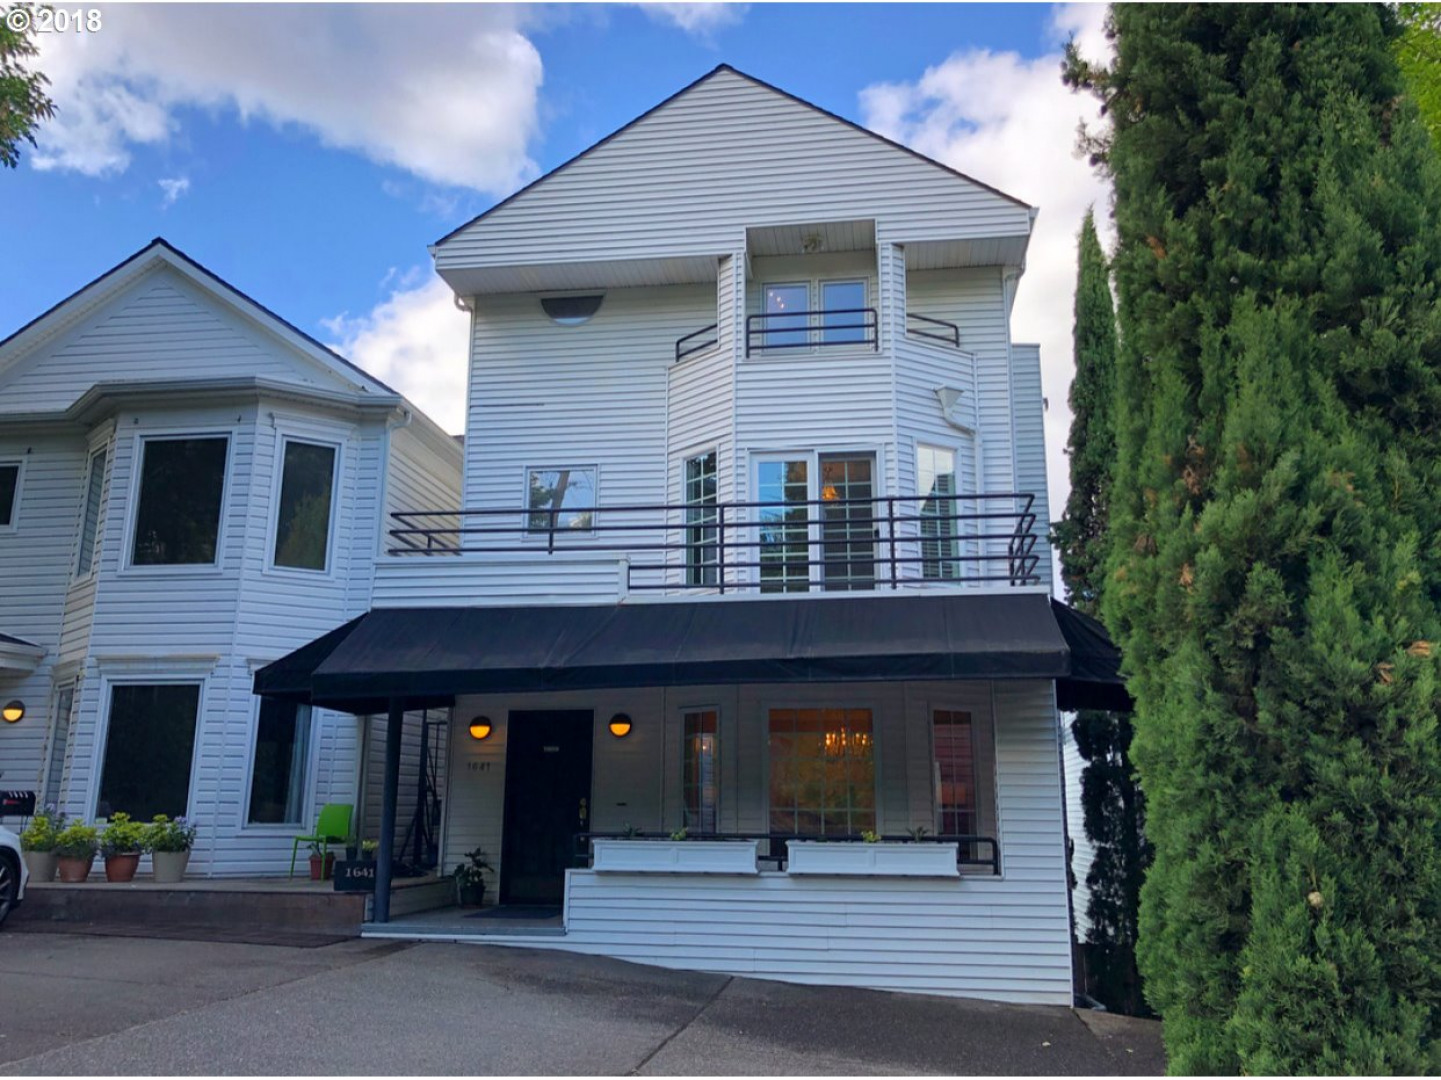 1641 SW Montgomery St, Portland, OR 97201 - Residential for $829,000